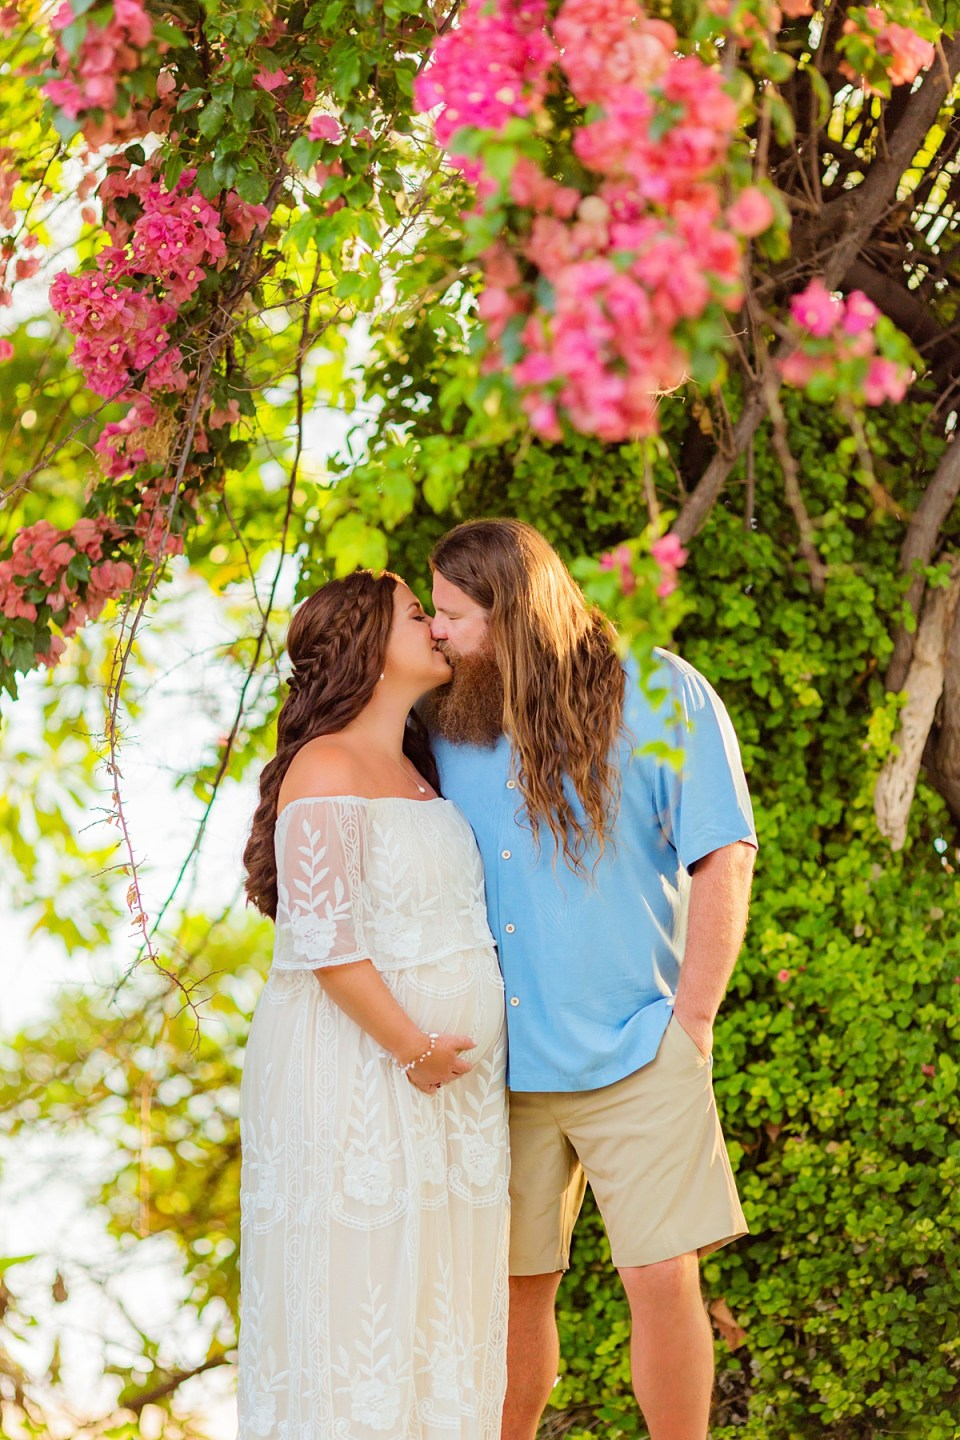 Beautiful Maui beach maternity session with bougainvillea in foreground